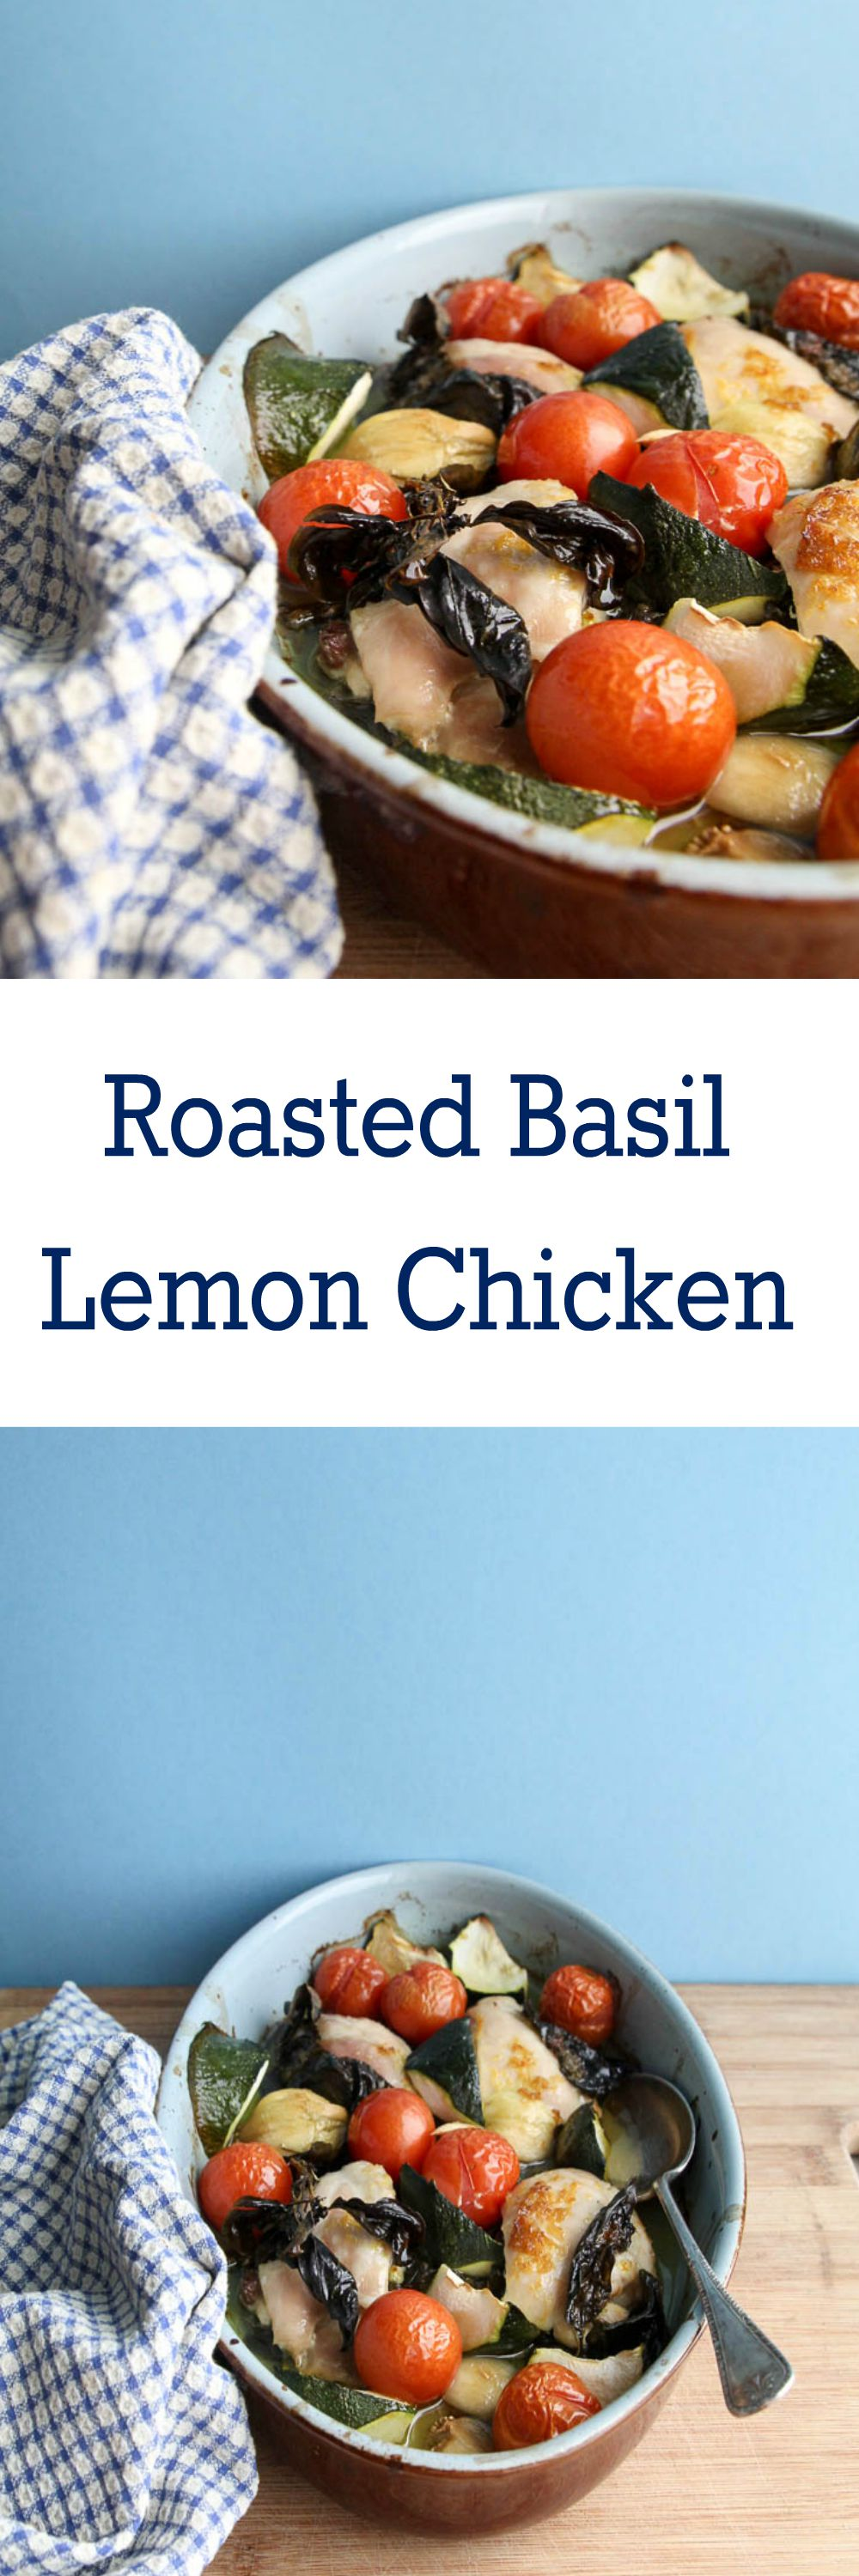 Roasted Basil Lemon Chicken